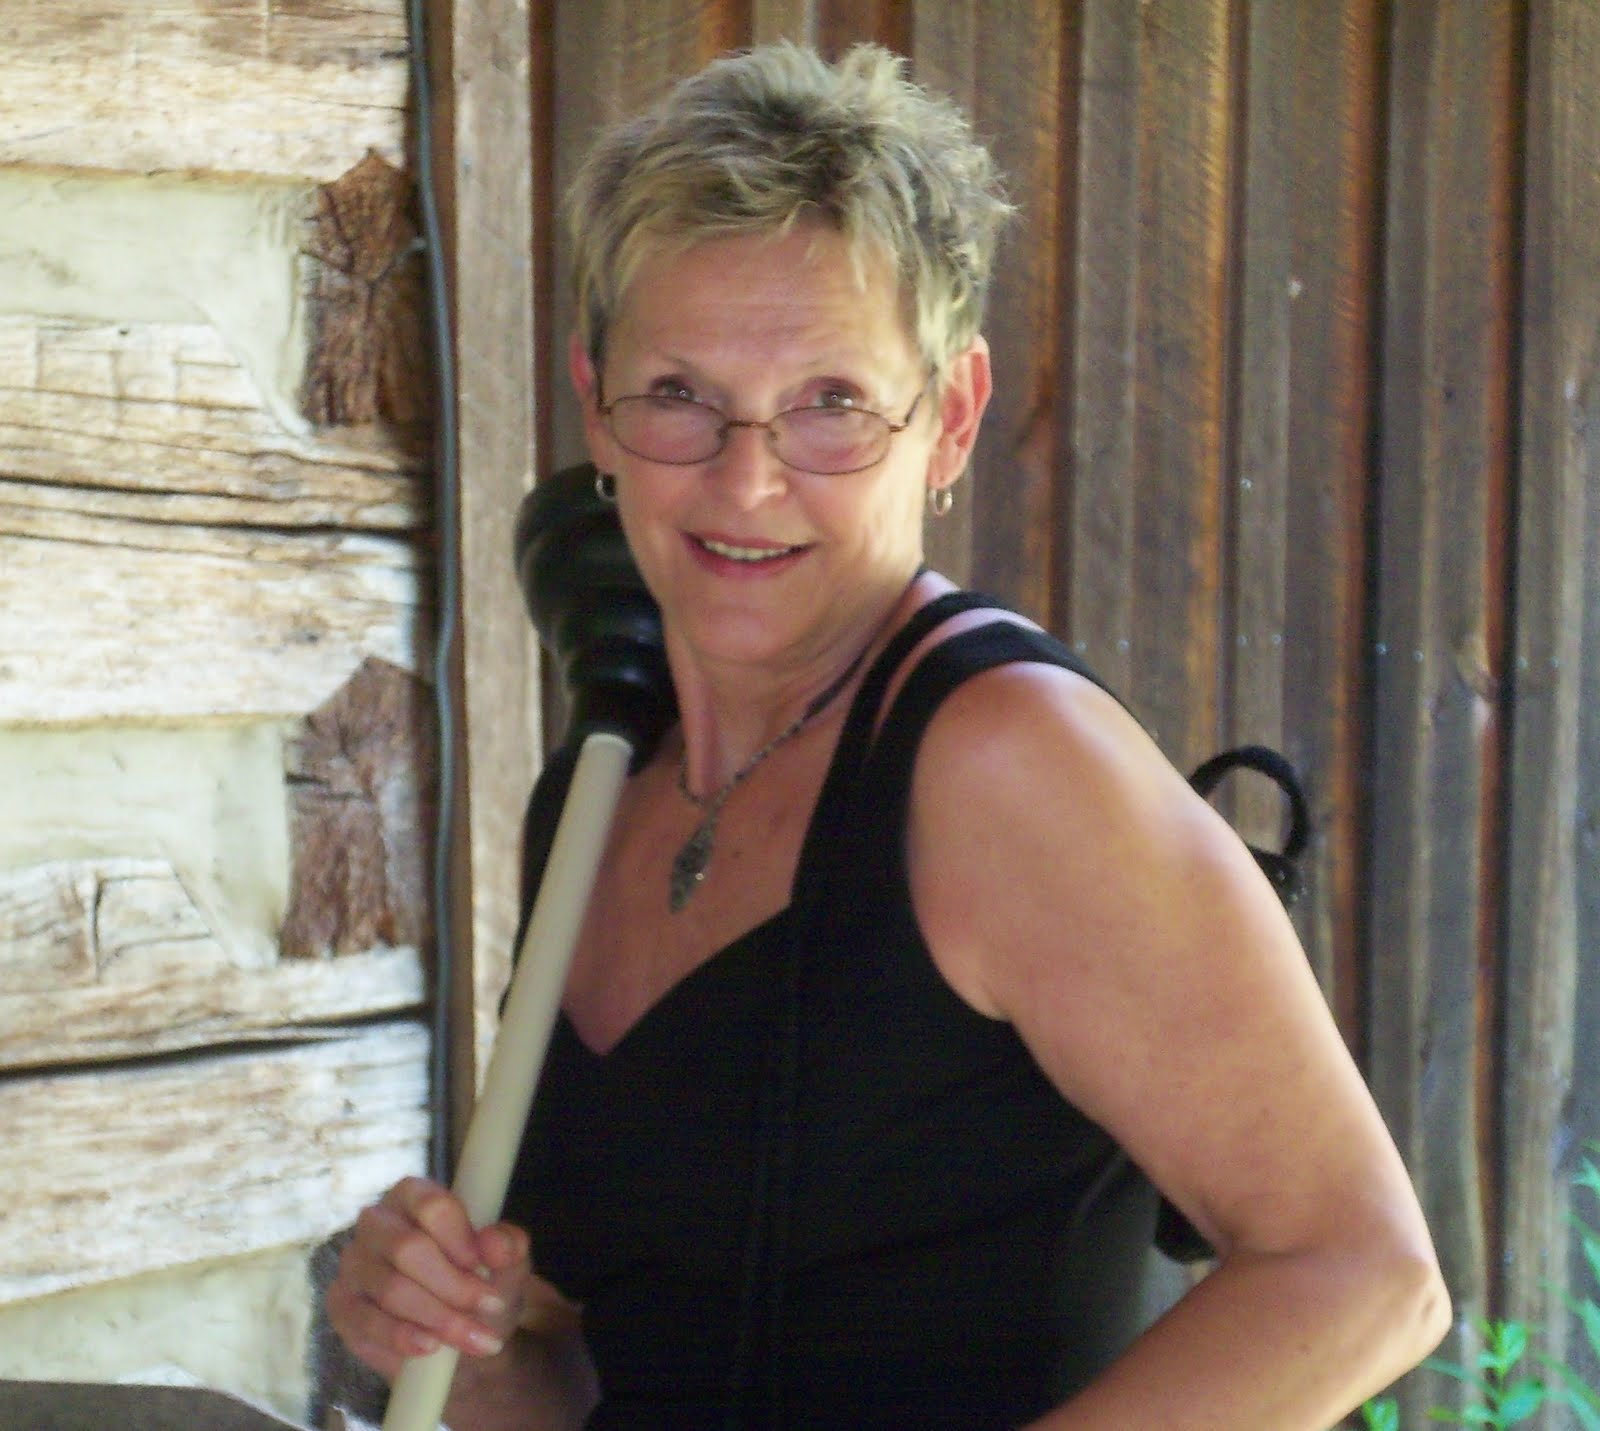 fort macleod milf personals Get middle aged women naked pictures and royalty-free images find and download high-quality mature women royalty-free stock photos, happy middle aged woman free live cams sex dating sex chat for free 2013-2015 milf nu.